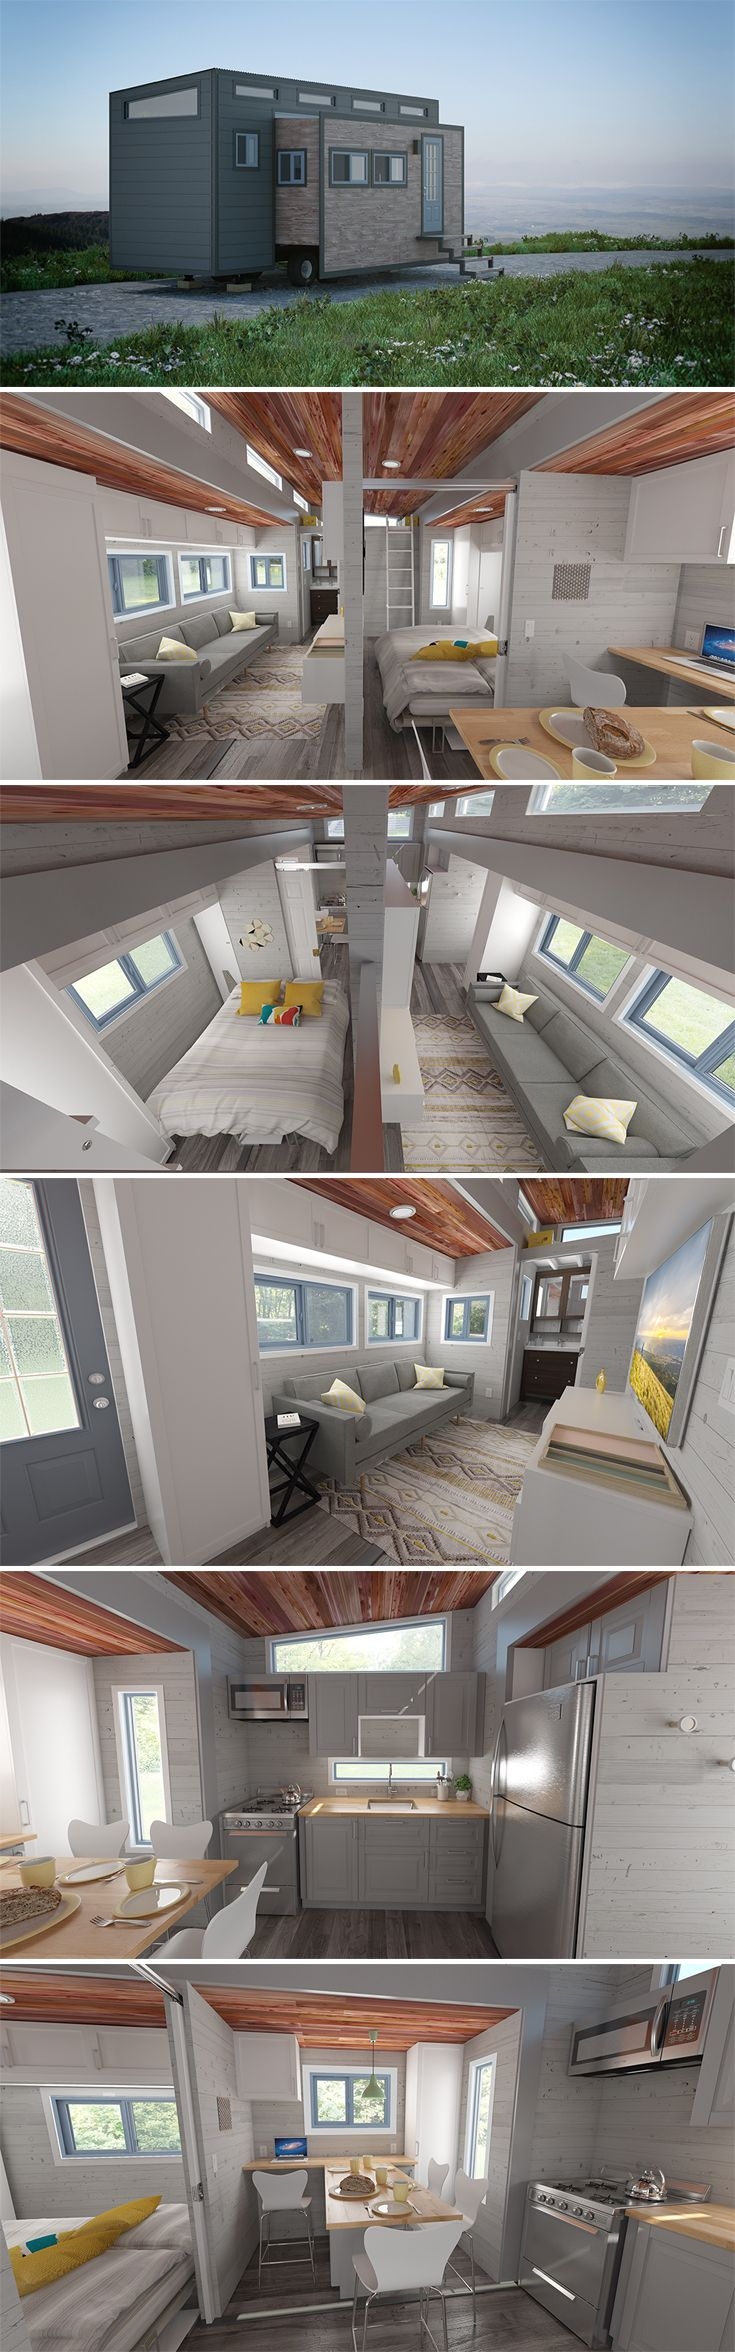 The 25 best Tiny house on wheels ideas on Pinterest House on